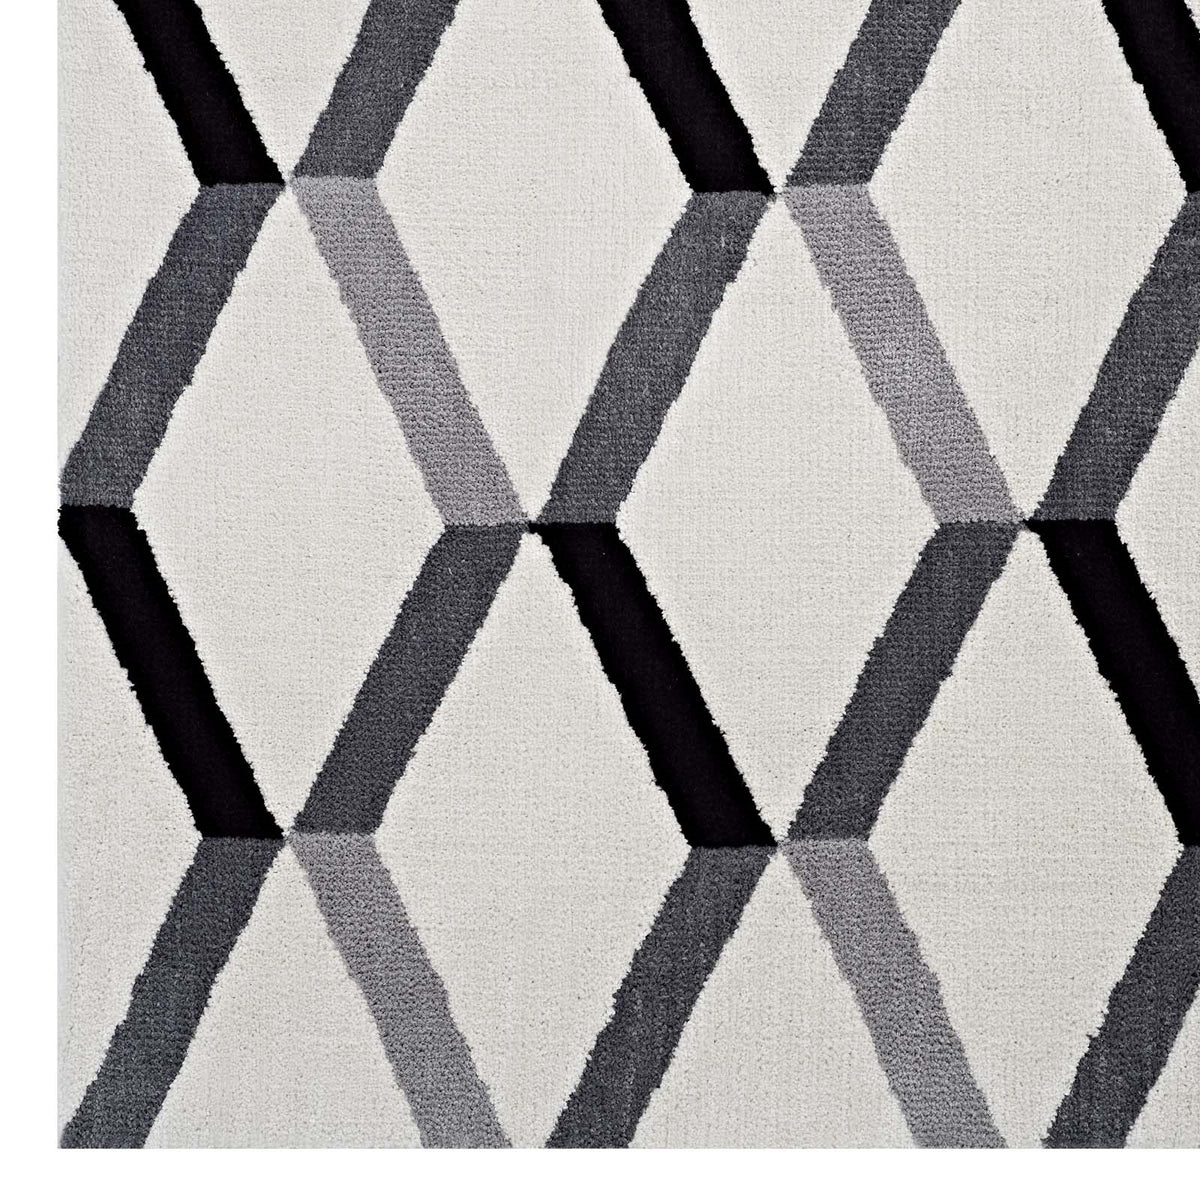 Kuali 8x10 Geometric Area Rug Black & White